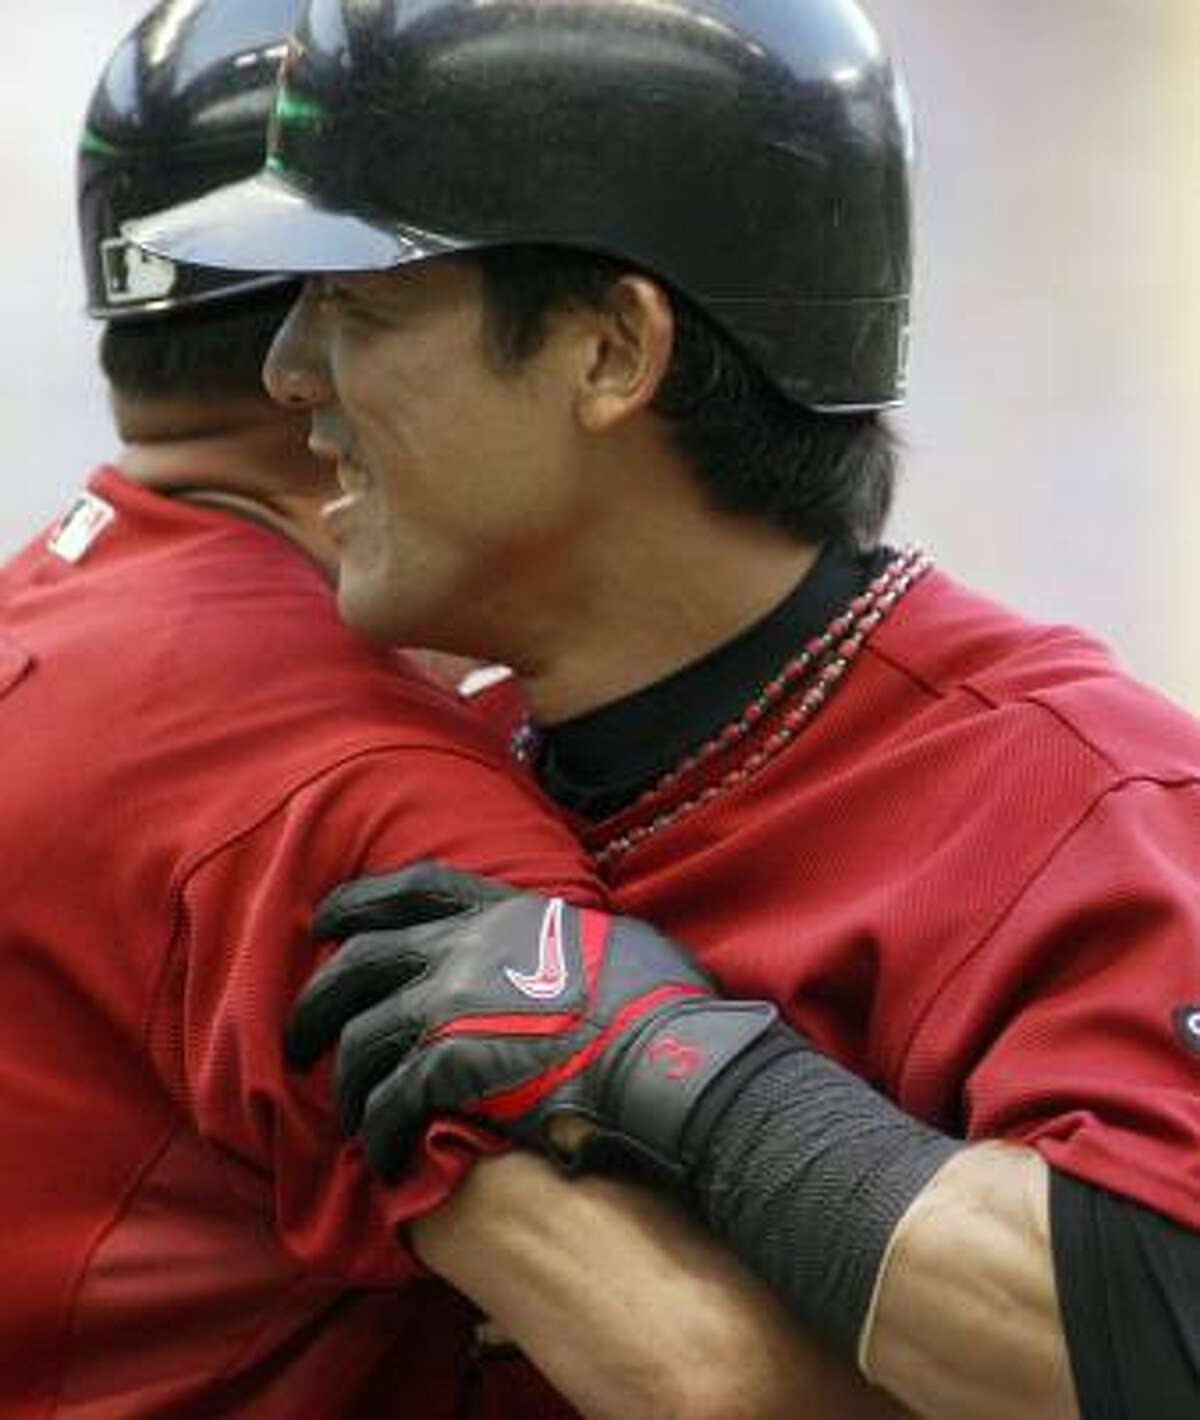 Kaz Matsui, right, is congratulated by first base coach Jose Cruz after career hit number 2,000 during the third inning against the Milwaukee Brewers on Saturday. Matsui had 1433 hits while playing in Japan and 567 hits with the majors.